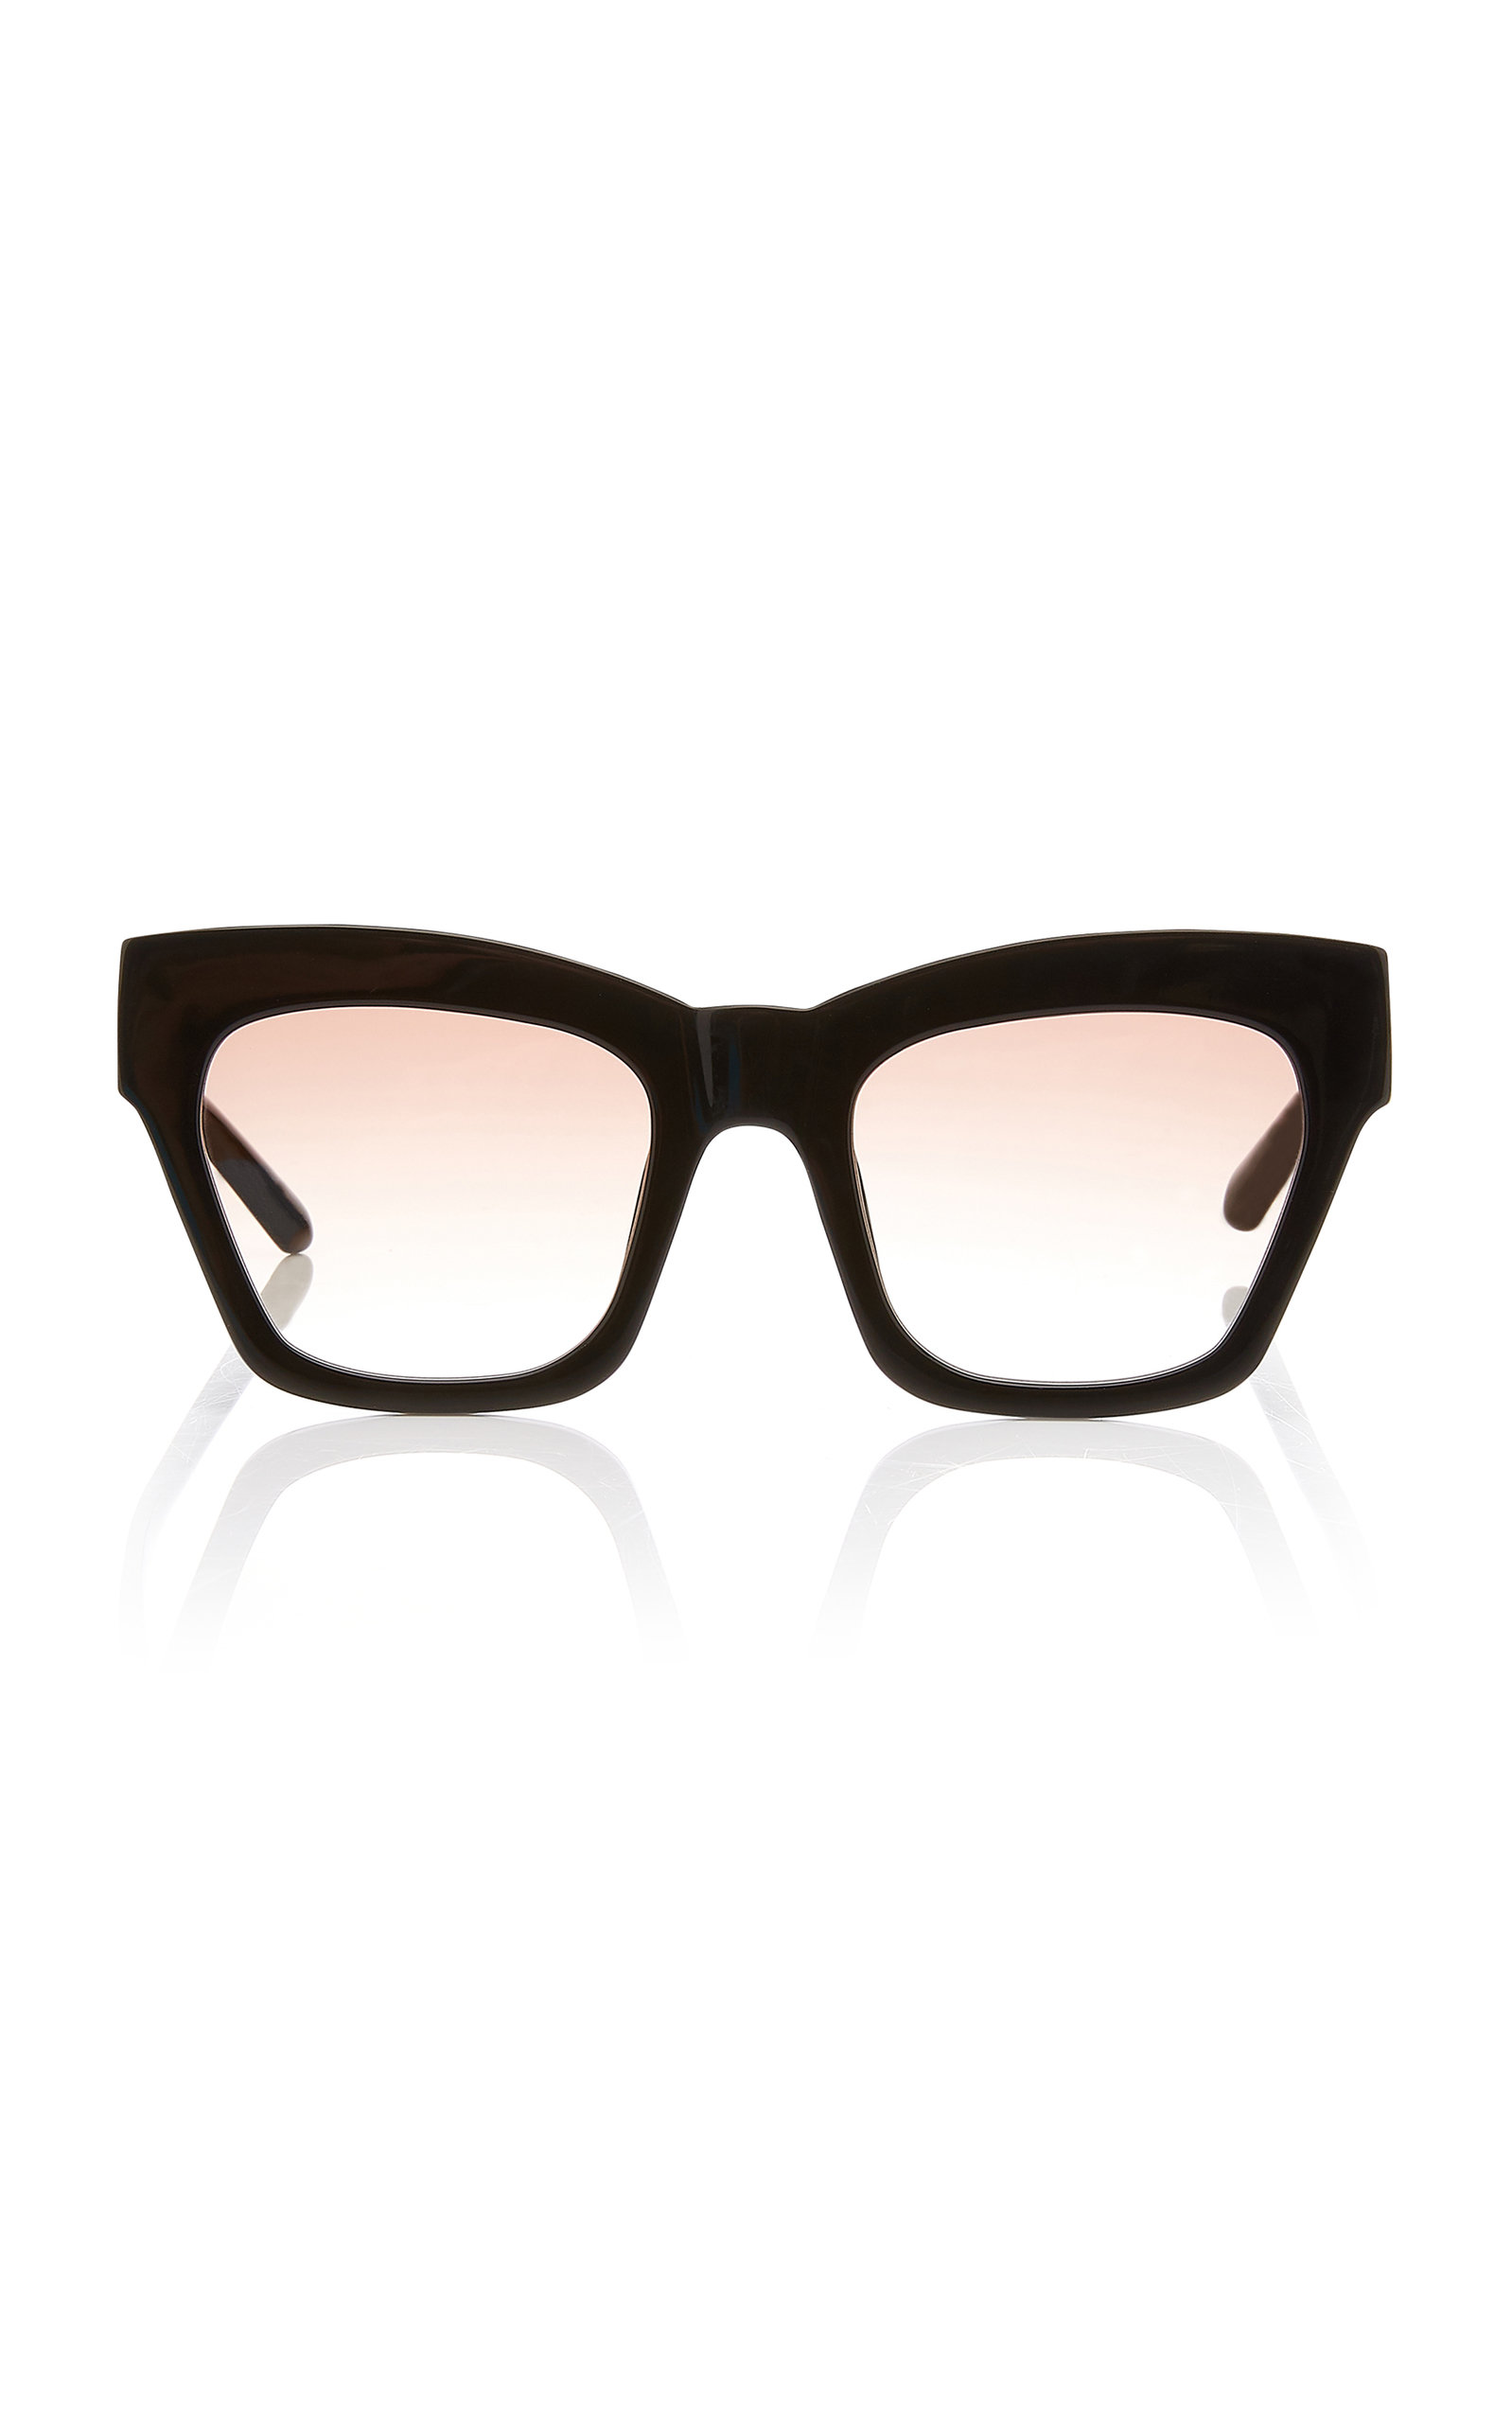 Karen Walker TREASURE SQUARE ACETATE SUNGLASSES